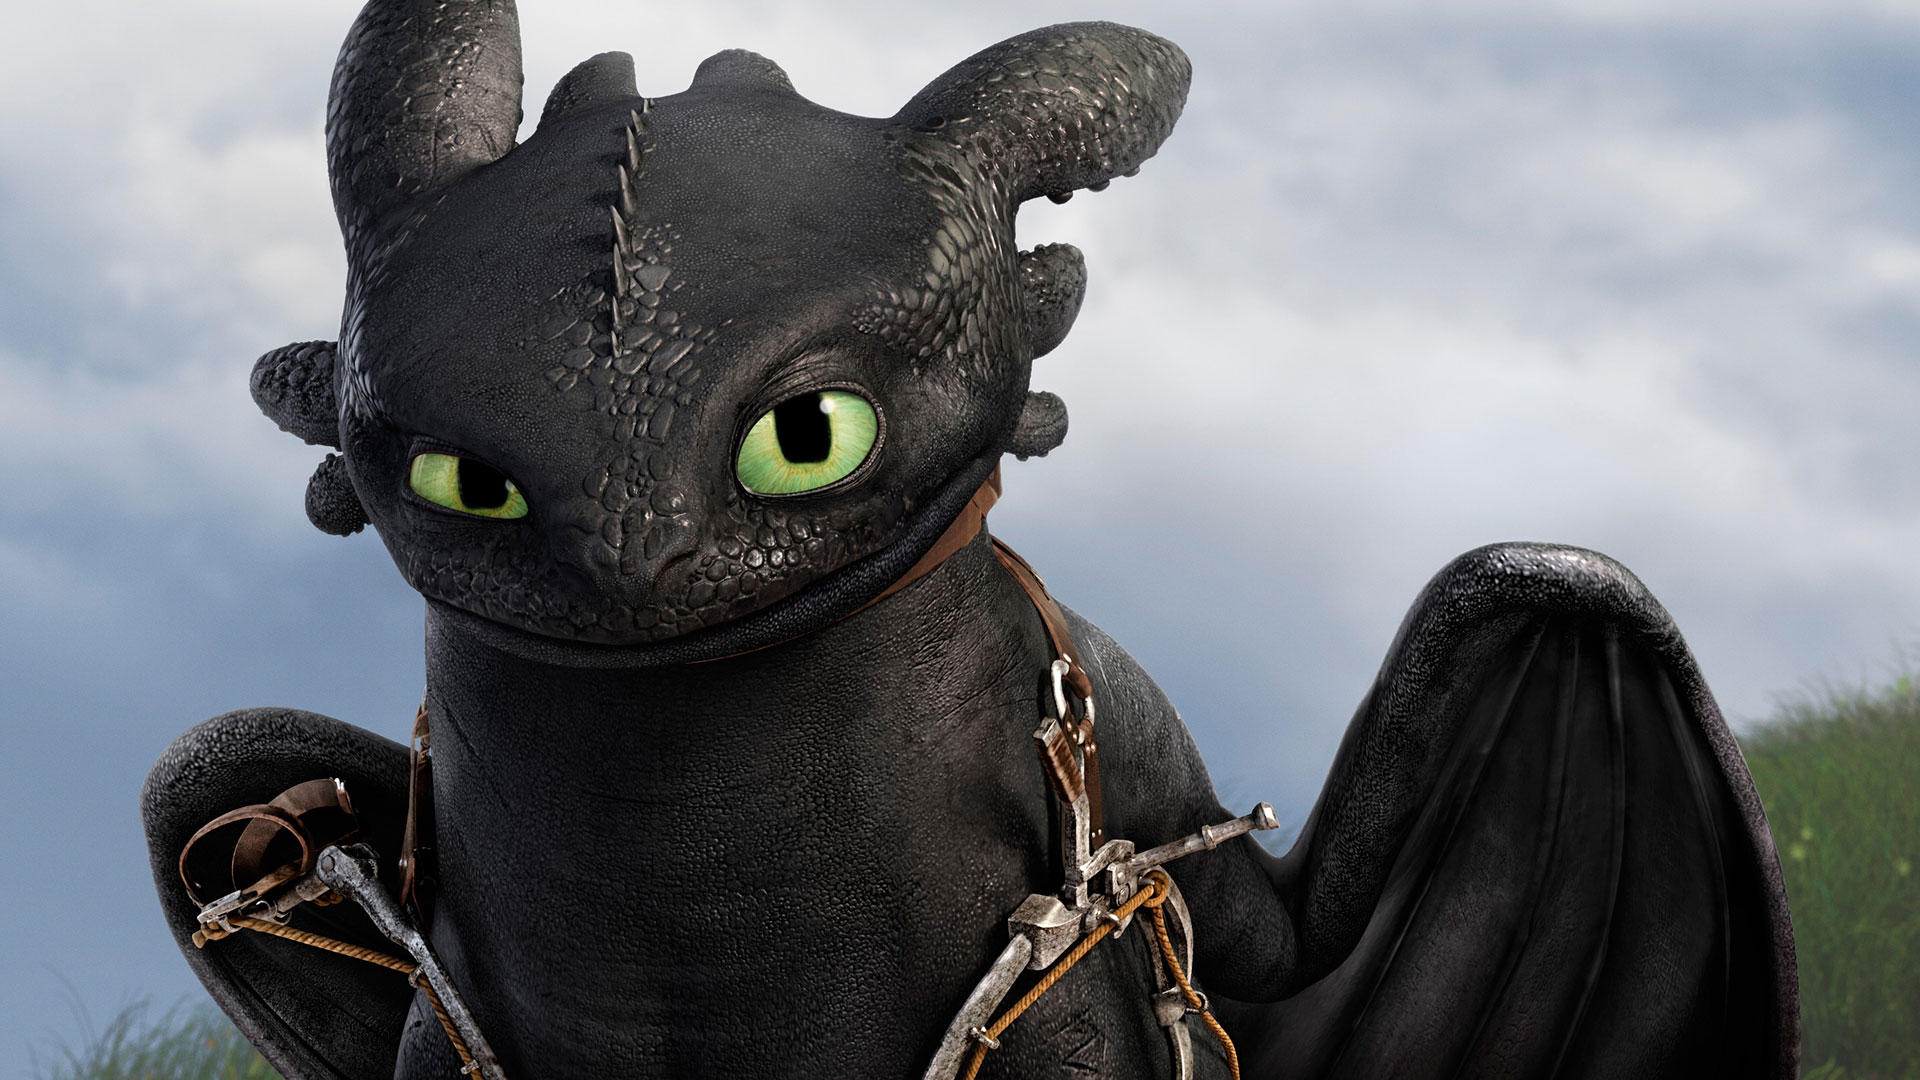 Toothless how to train your dragon 2 wallpaper 1920  215 1080How To Train Your Dragon 2 Wallpaper Toothless